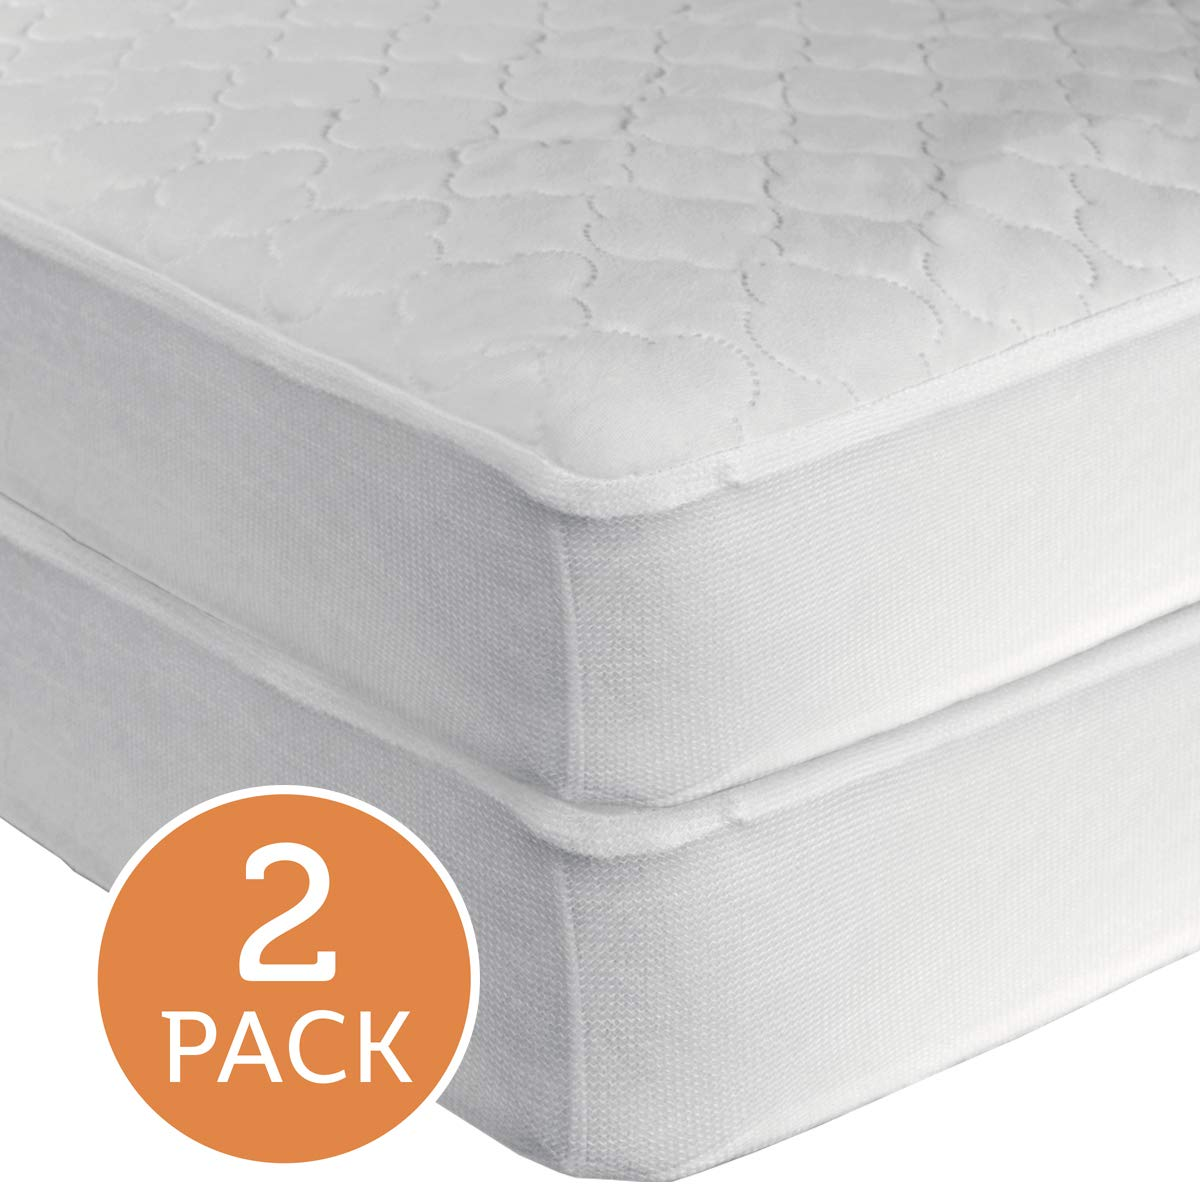 """Sealy Waterproof Fitted Toddler and Baby Crib Mattress Pad Cover 2-Pack - 100% Waterproof, Deep Fitted Stretch Skirt, Machine Washable & Dryer Friendly 52""""x28"""", 2 Protector Pads, White"""